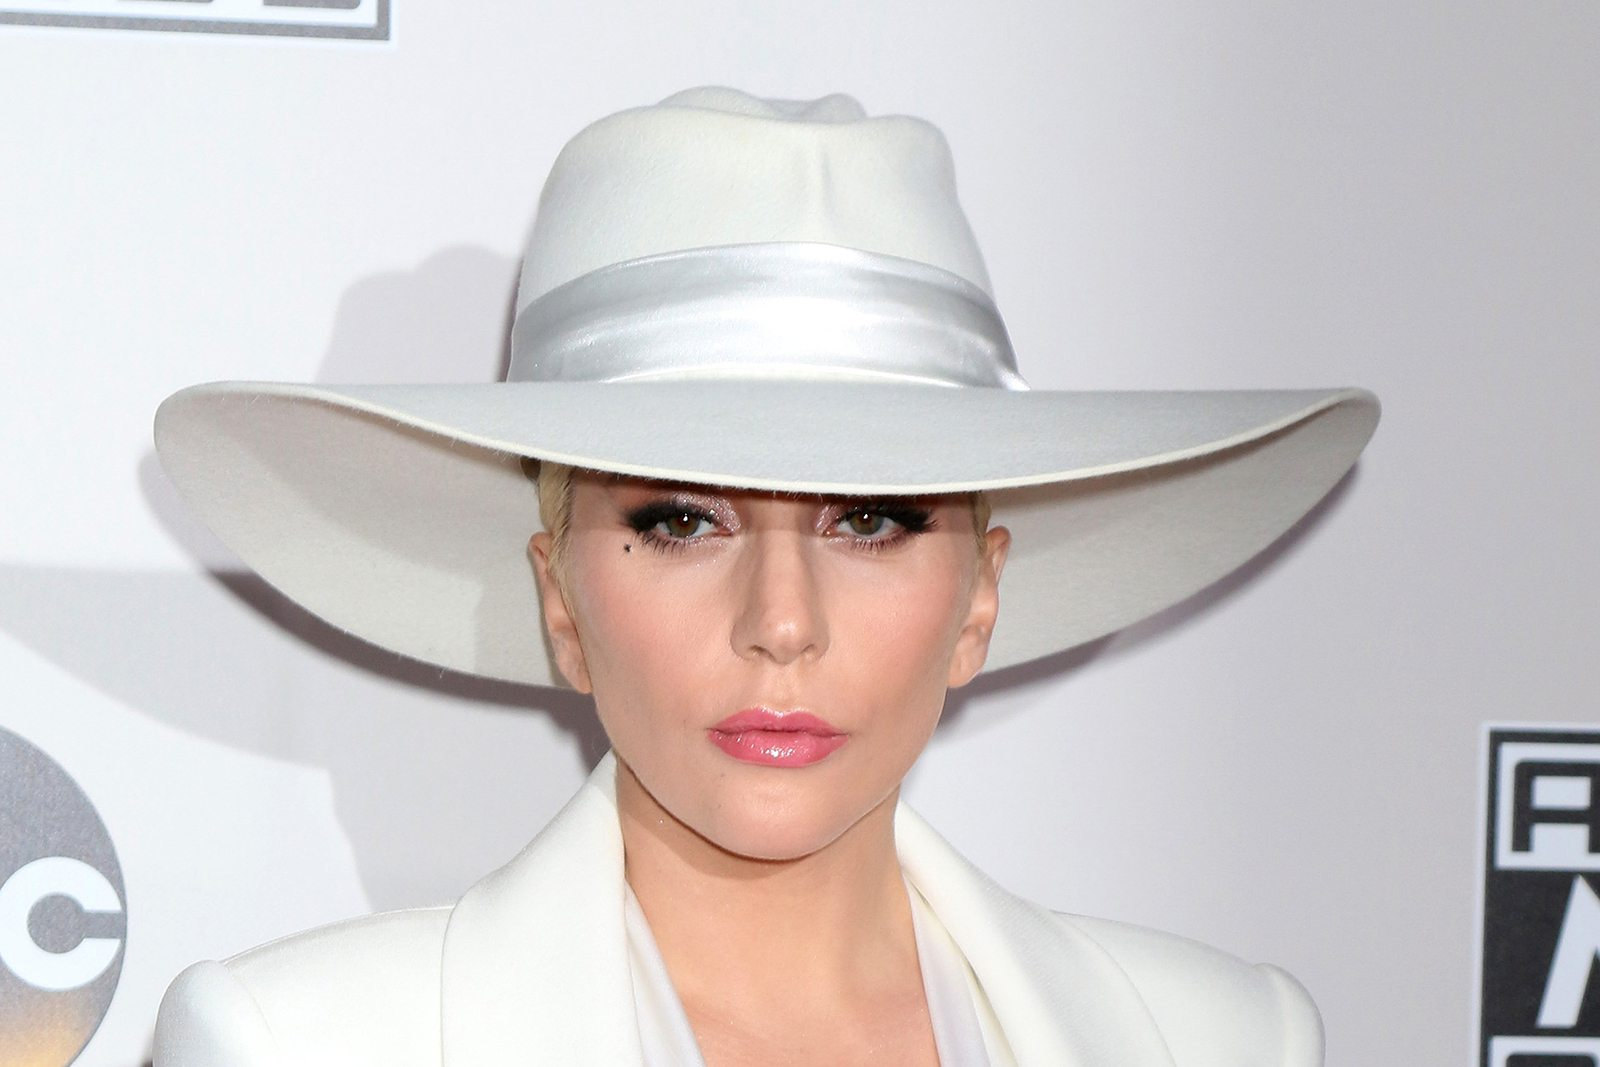 Popstar Lady Gaga Recently Went Public with Her Struggles with Fibromyalgia